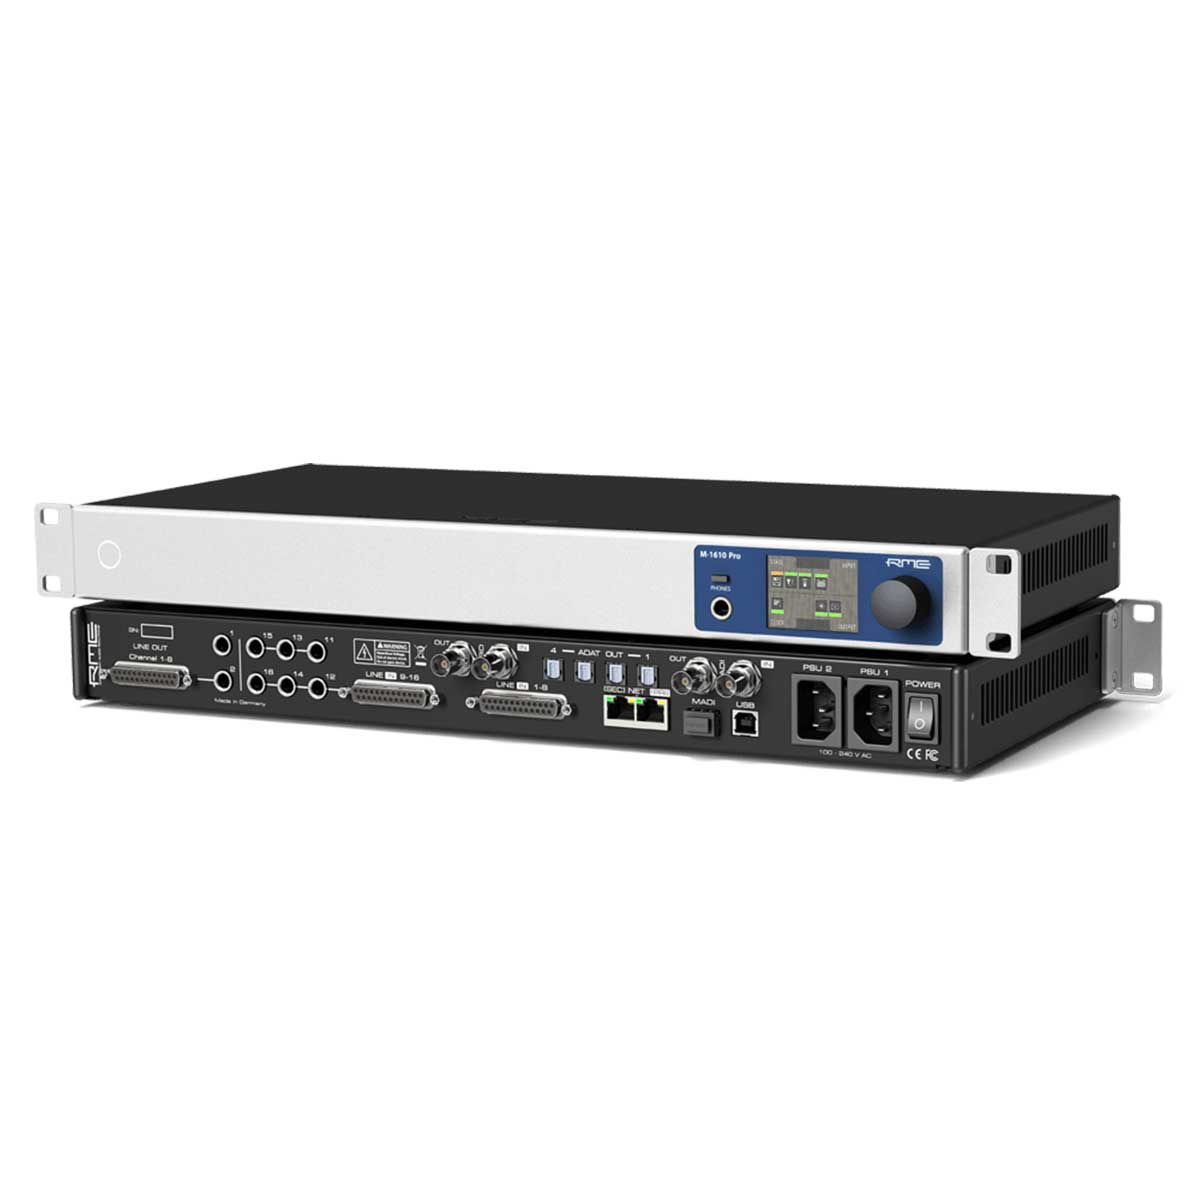 RME M-1610 Pro 16 channel A/D, 10 channel D/A converter with ADAT, AVB, MADI